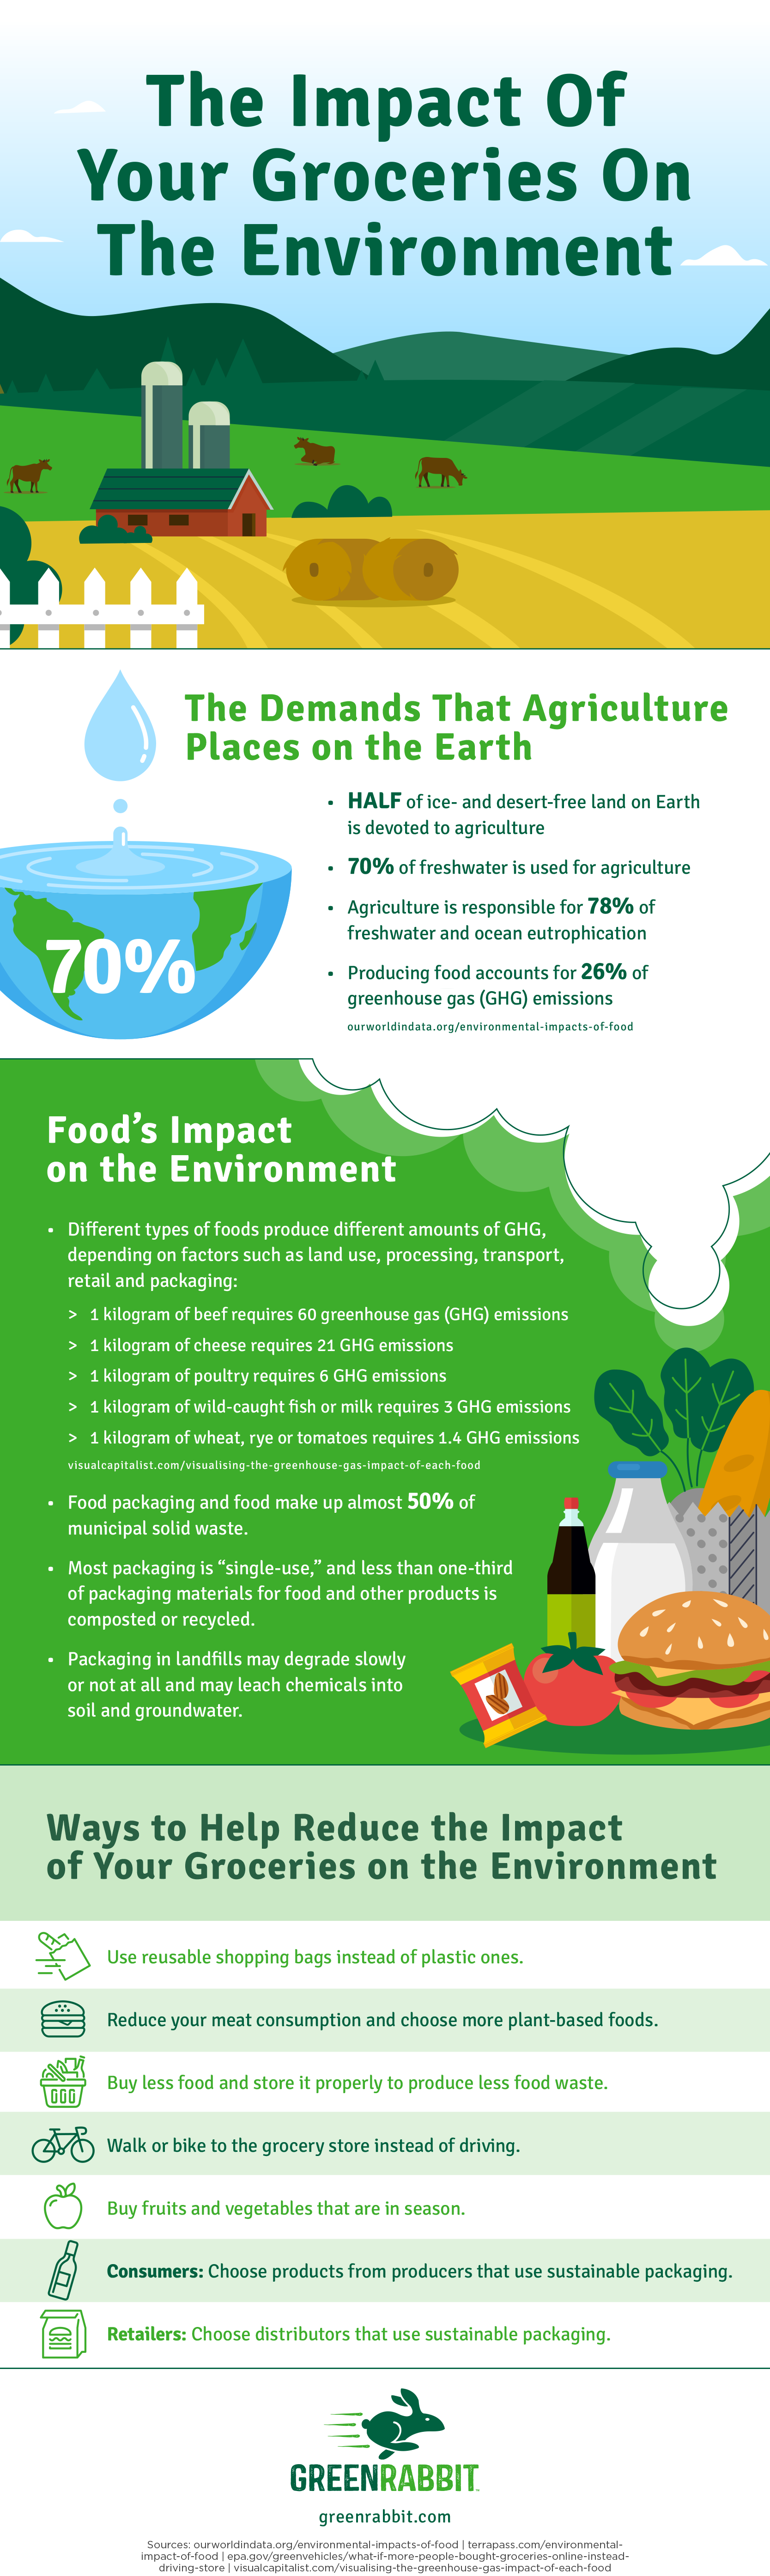 The Impact of your Groceries on the Environment [Visual] | ecogreenlove